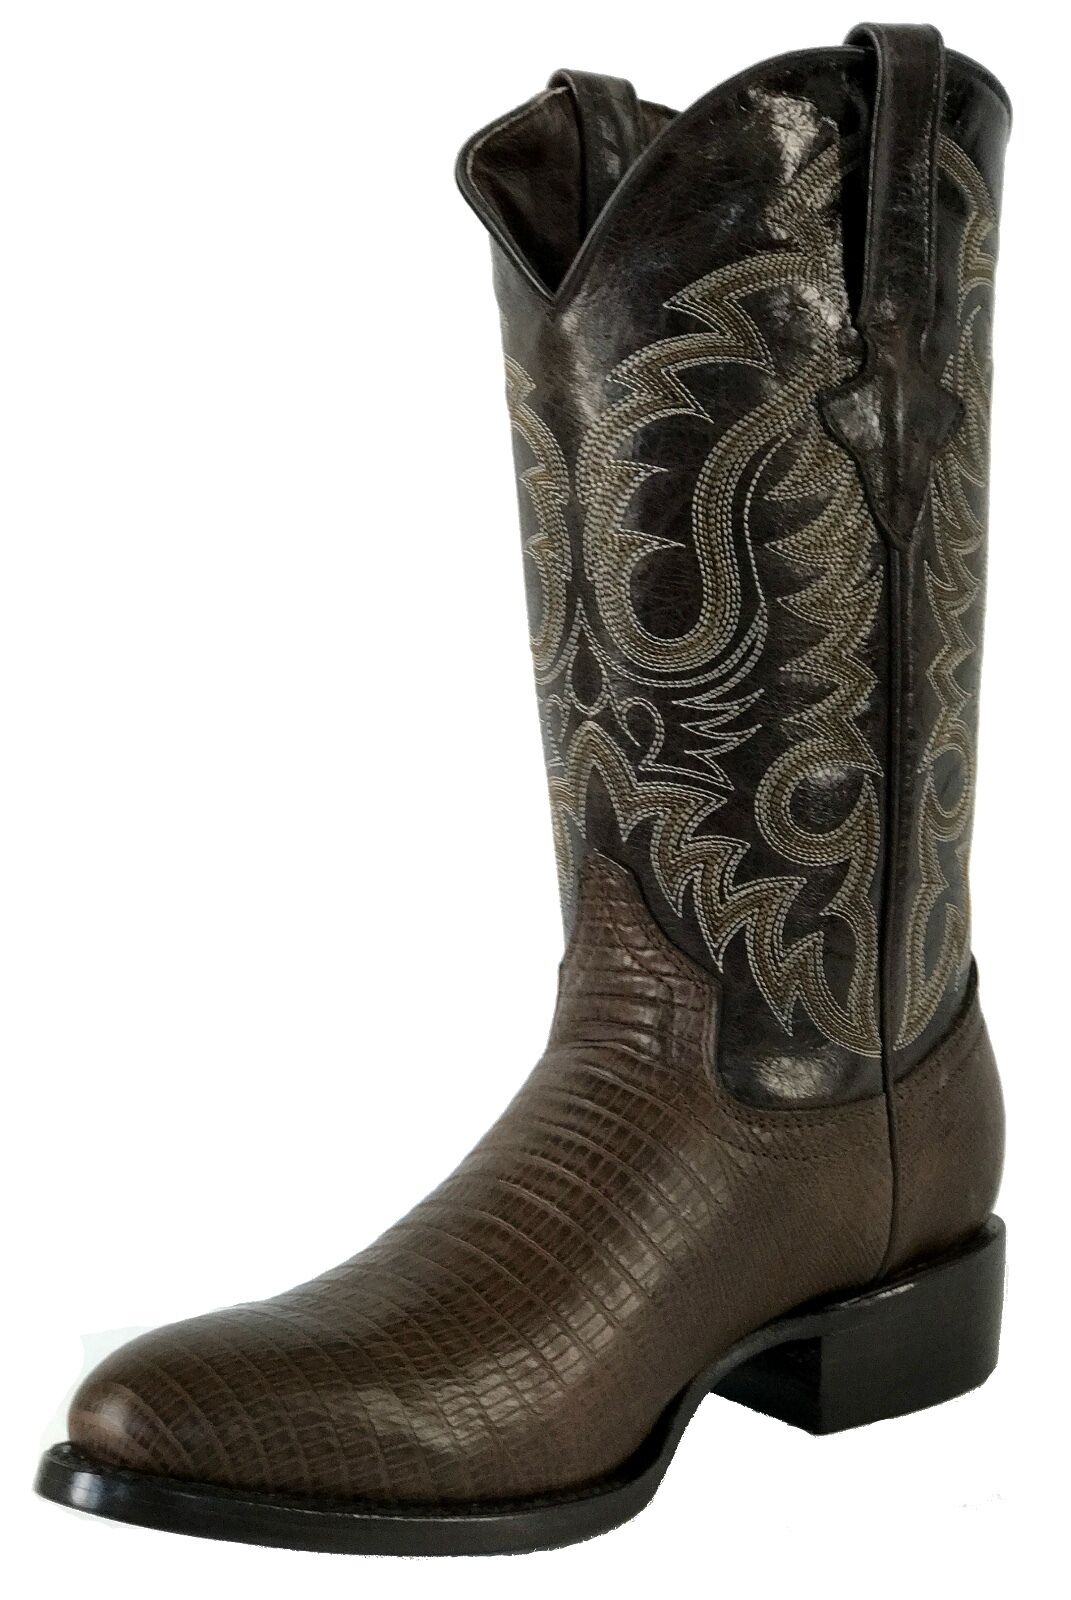 Men's New Leather Exotic Lizard Design Rodeo Western Cowboy Boots R Toe Brown